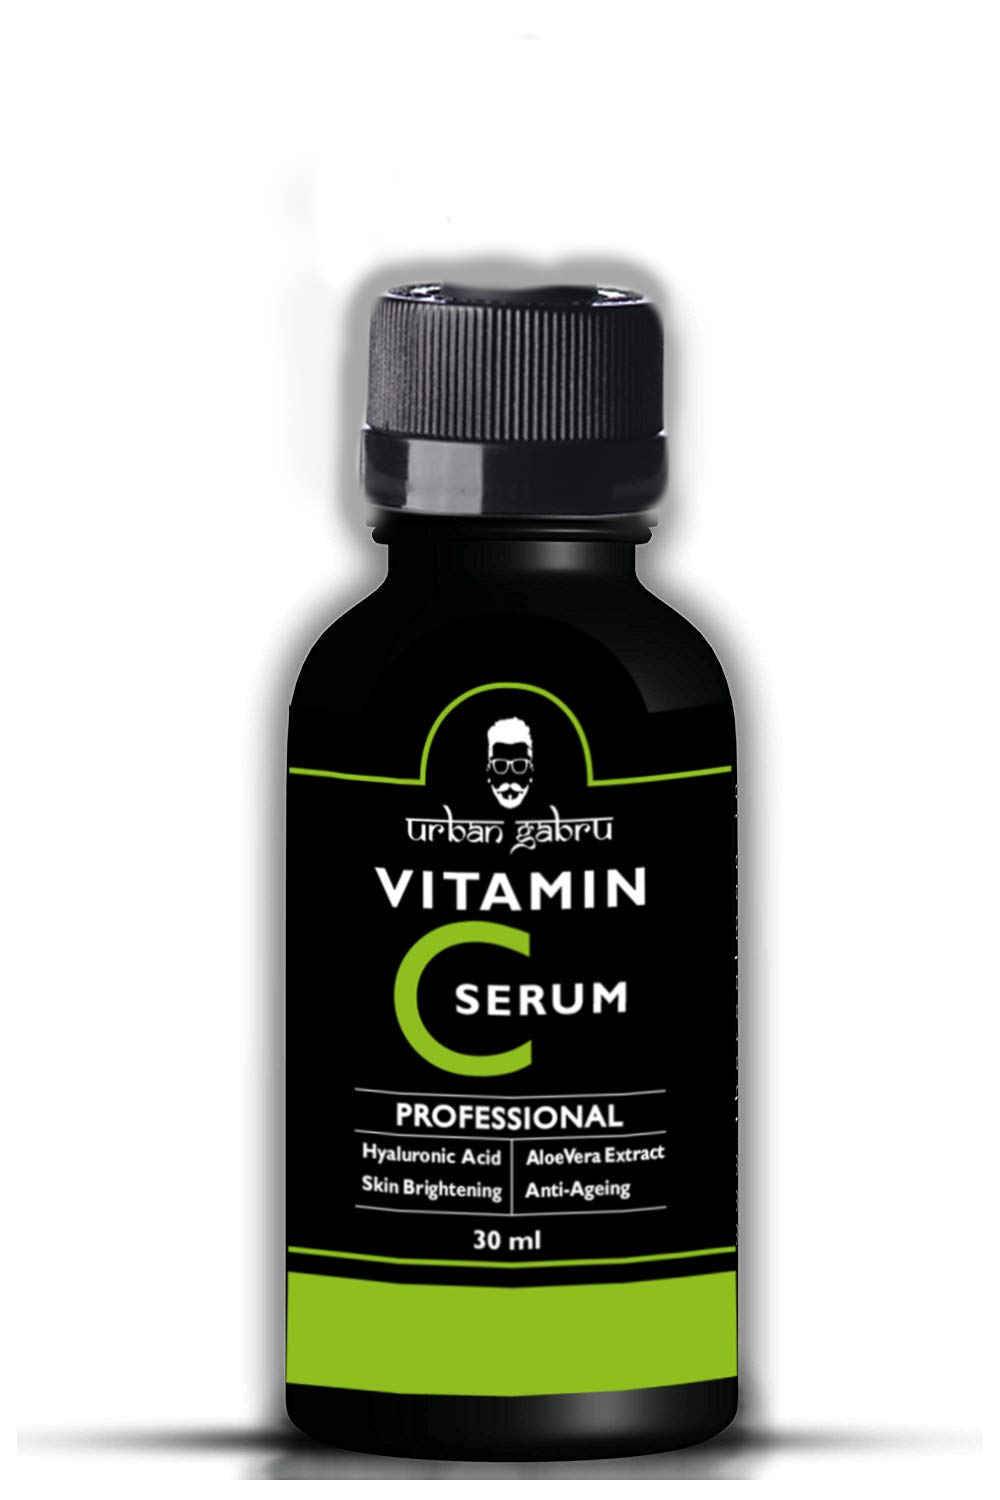 UrbanGabru Vitamin C Serum for face with hyaluronic acid, Aloe Vera extract and grape seed extract 30 ml product image